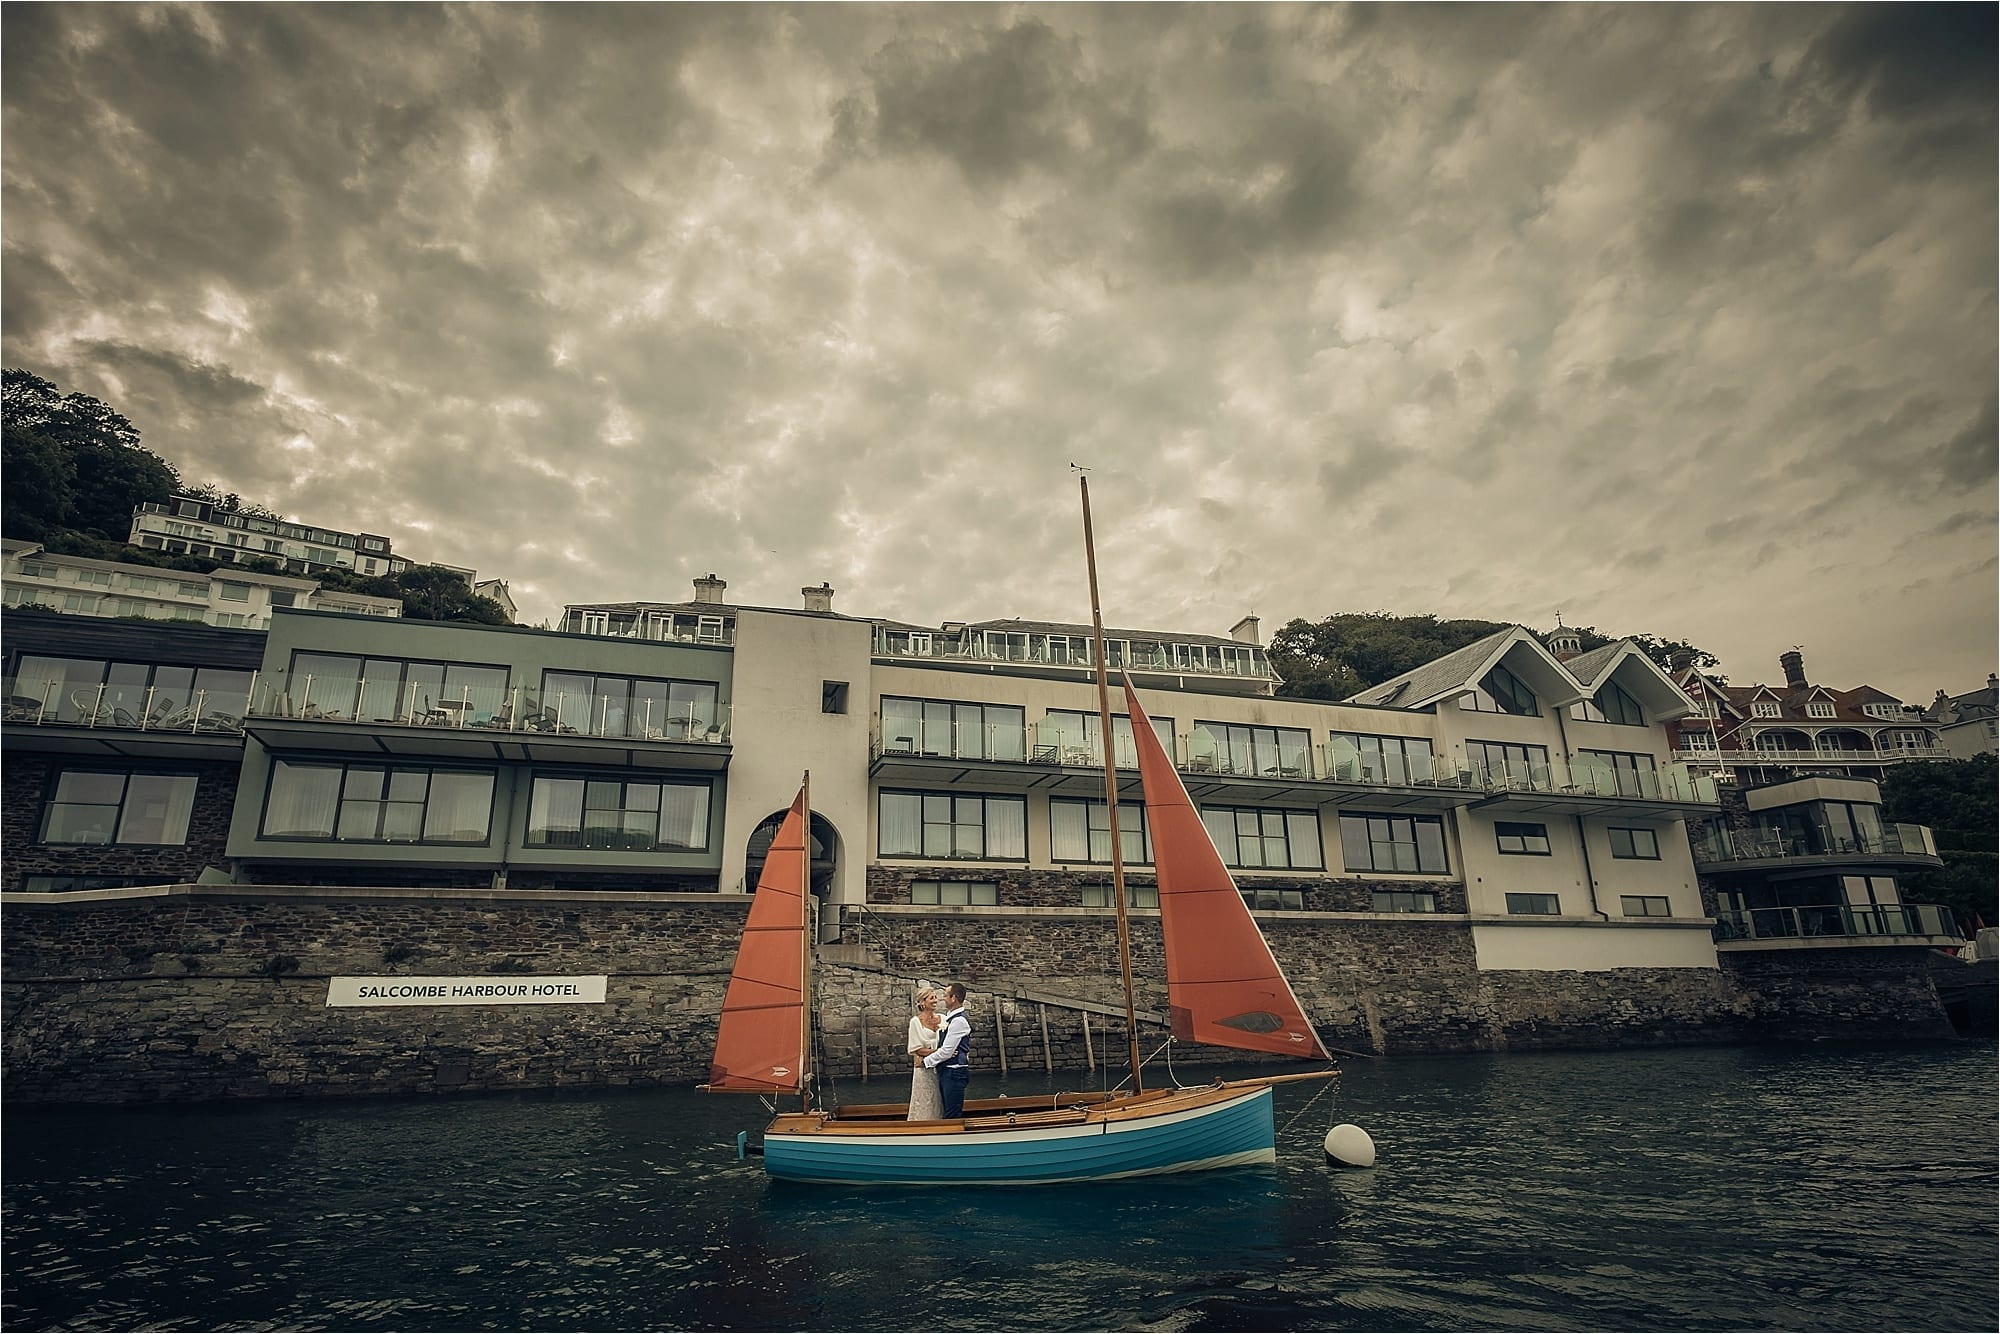 Salcombe Harbour Hotel wedding photographers